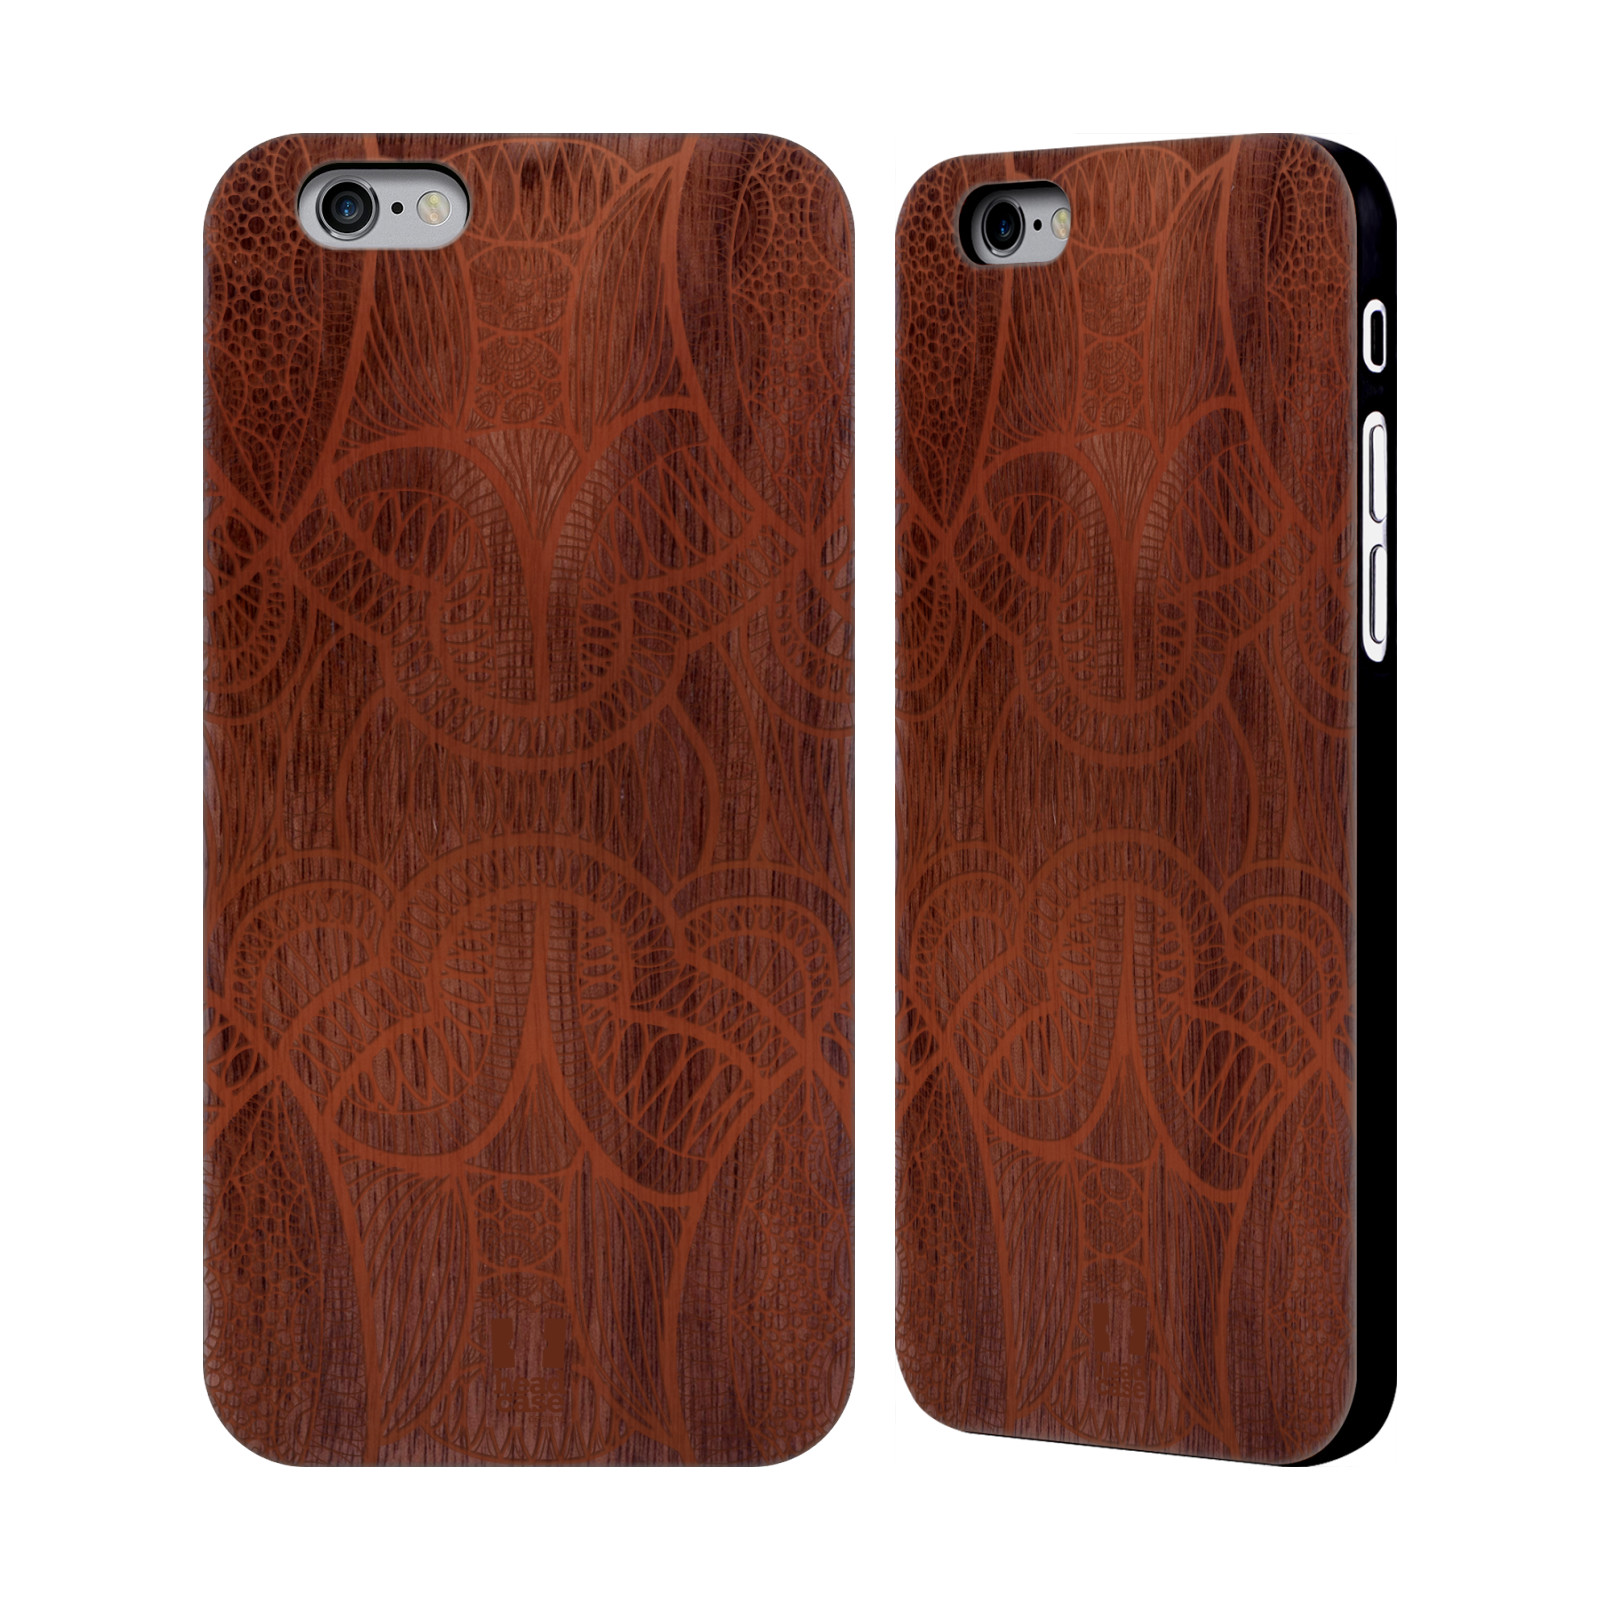 wood iphone cases designs wood walnut wooden back cover 13323